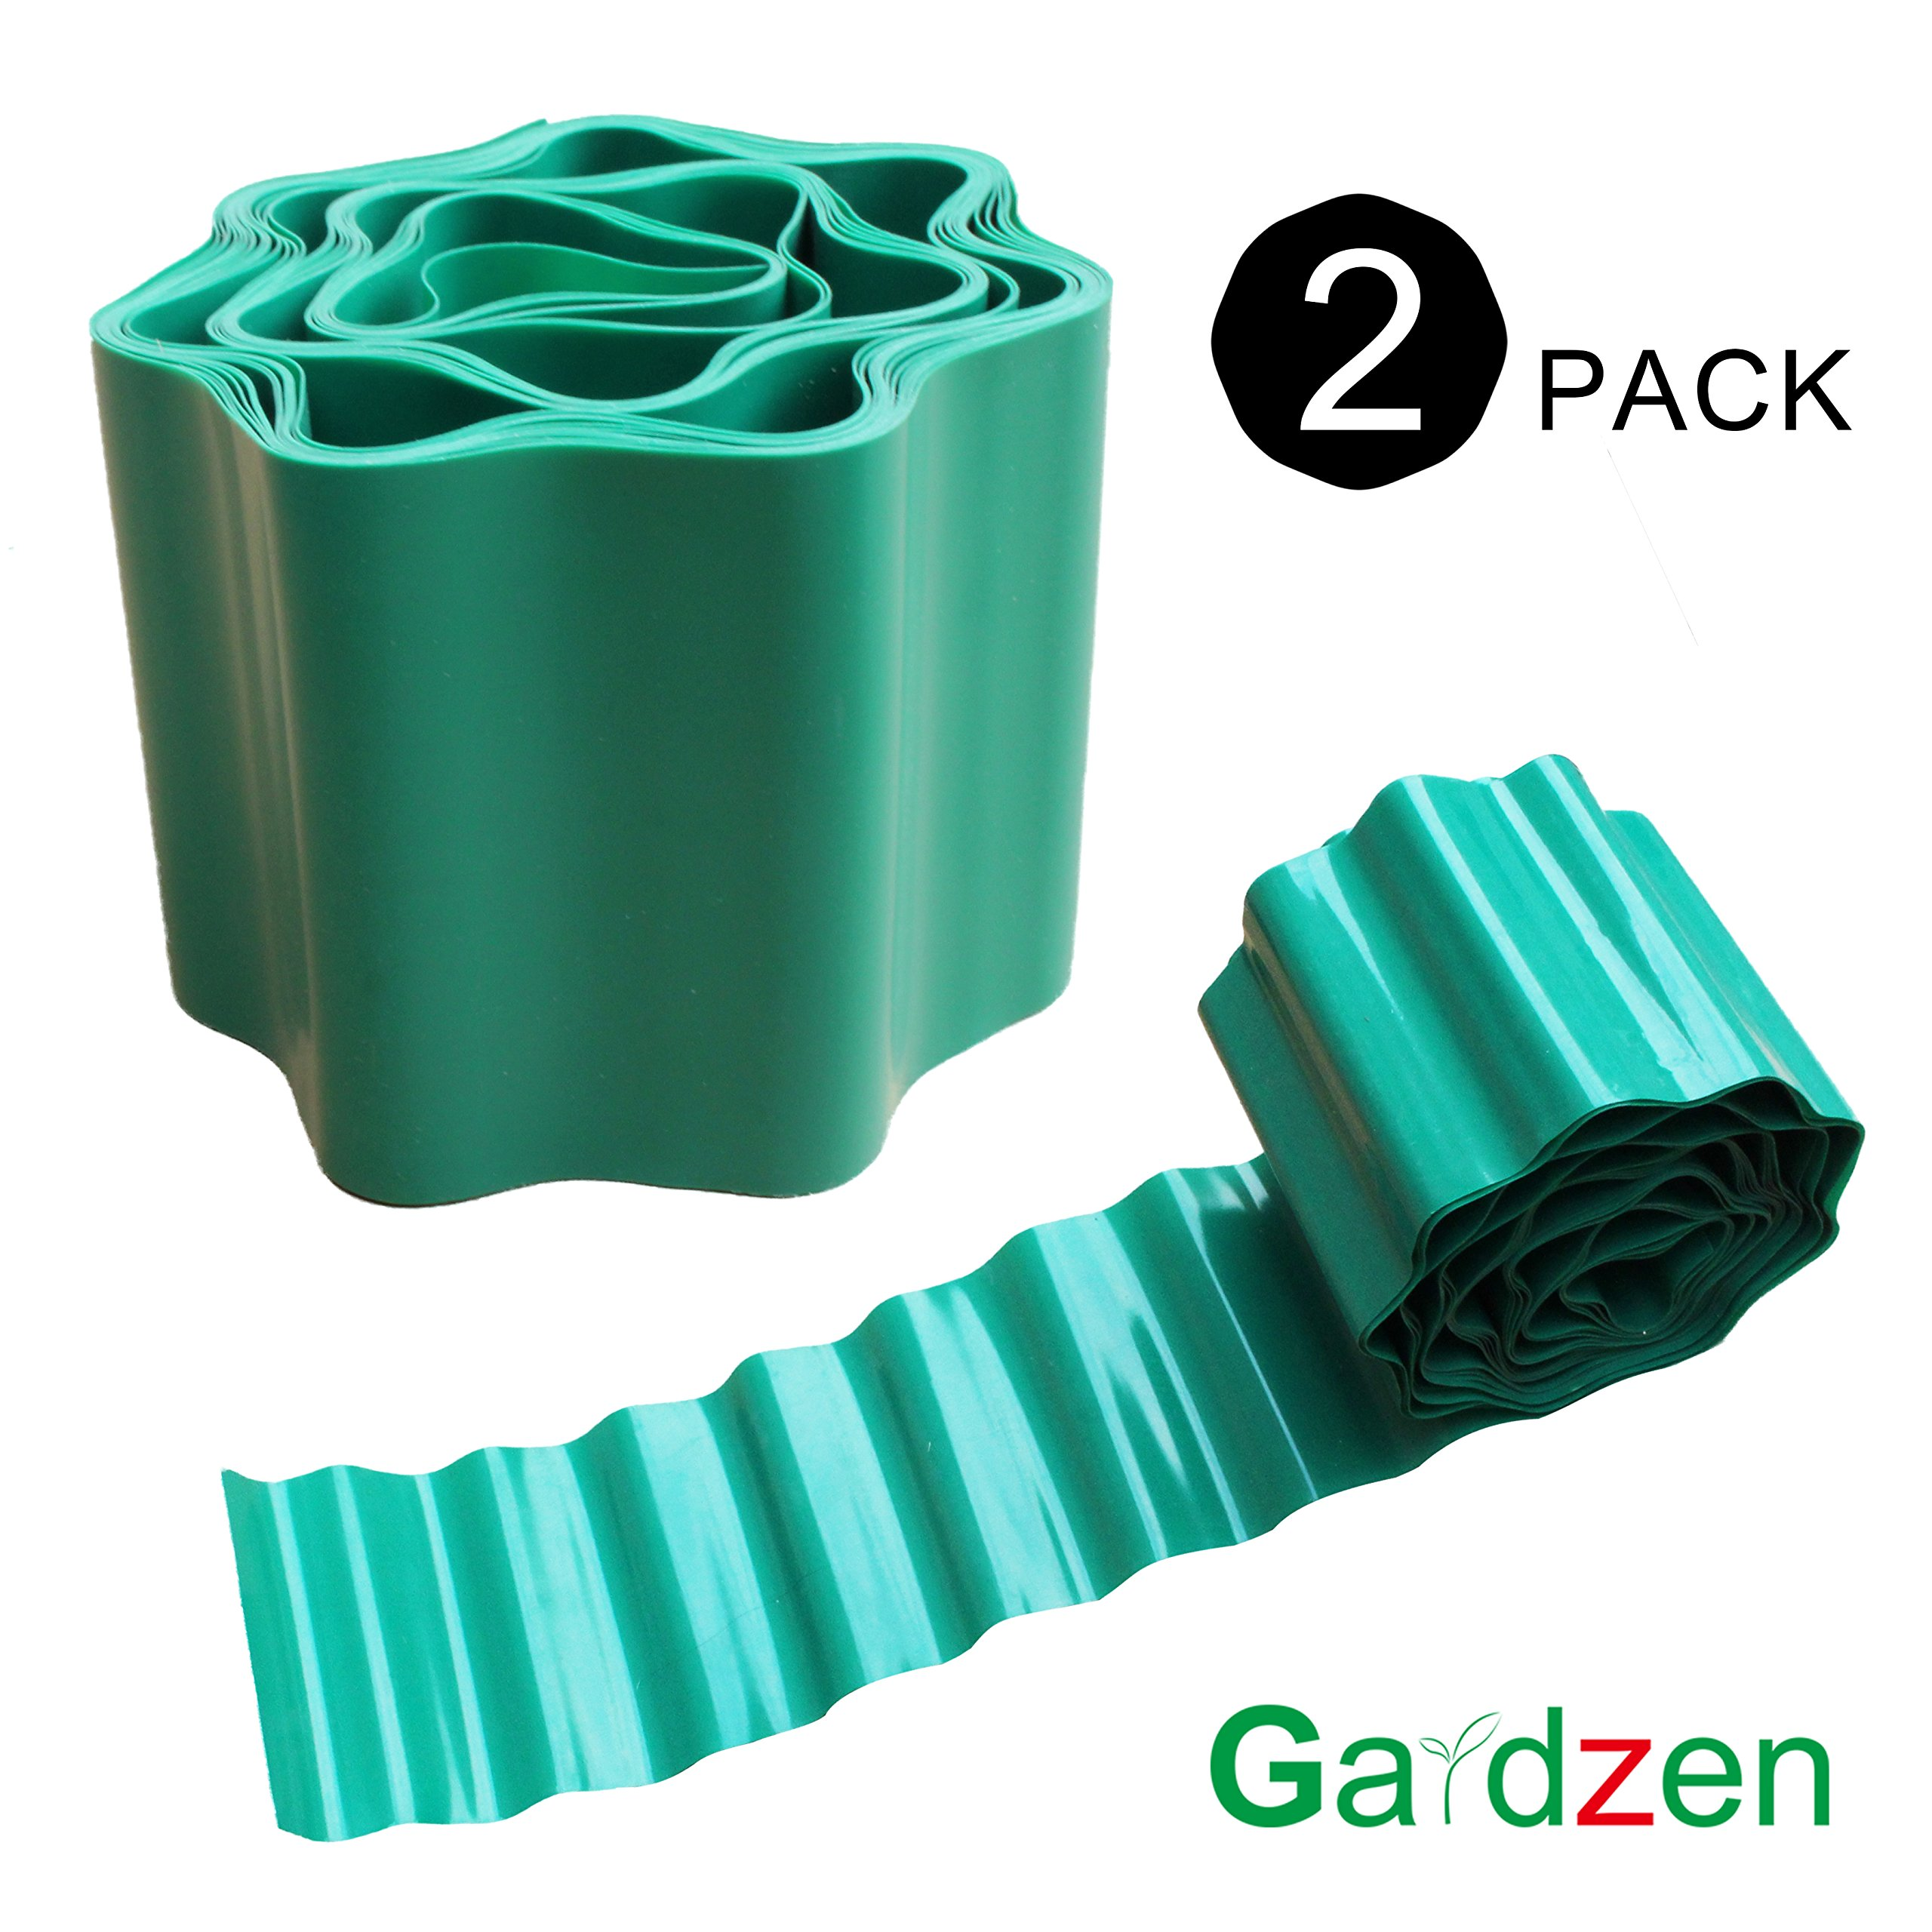 Gardzen 2-Pack 15cmx12m Gardening Green Flexible Plastic PVC Garden Lawn Edging, Border Edging for Lawns, Flower Beds. Protect Your Lawn from Erosion with This Strong and Durable Plastic Lawn Edging